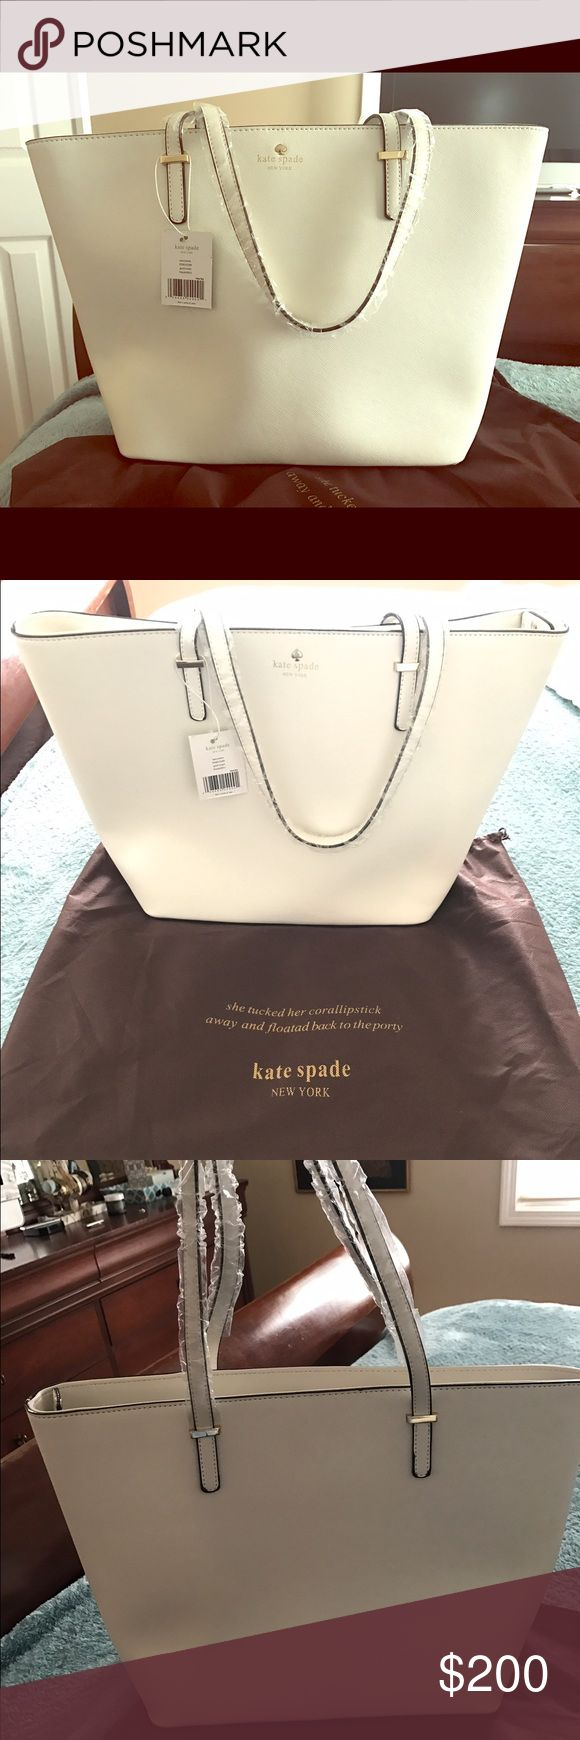 Brand New Kade Spade Maryanne Gold Coast Bag Brand New white Maryanne Gold Coast bag. Never been used. Still has plastic on the handles. In original Kate Spade protective bag. kate spade Bags